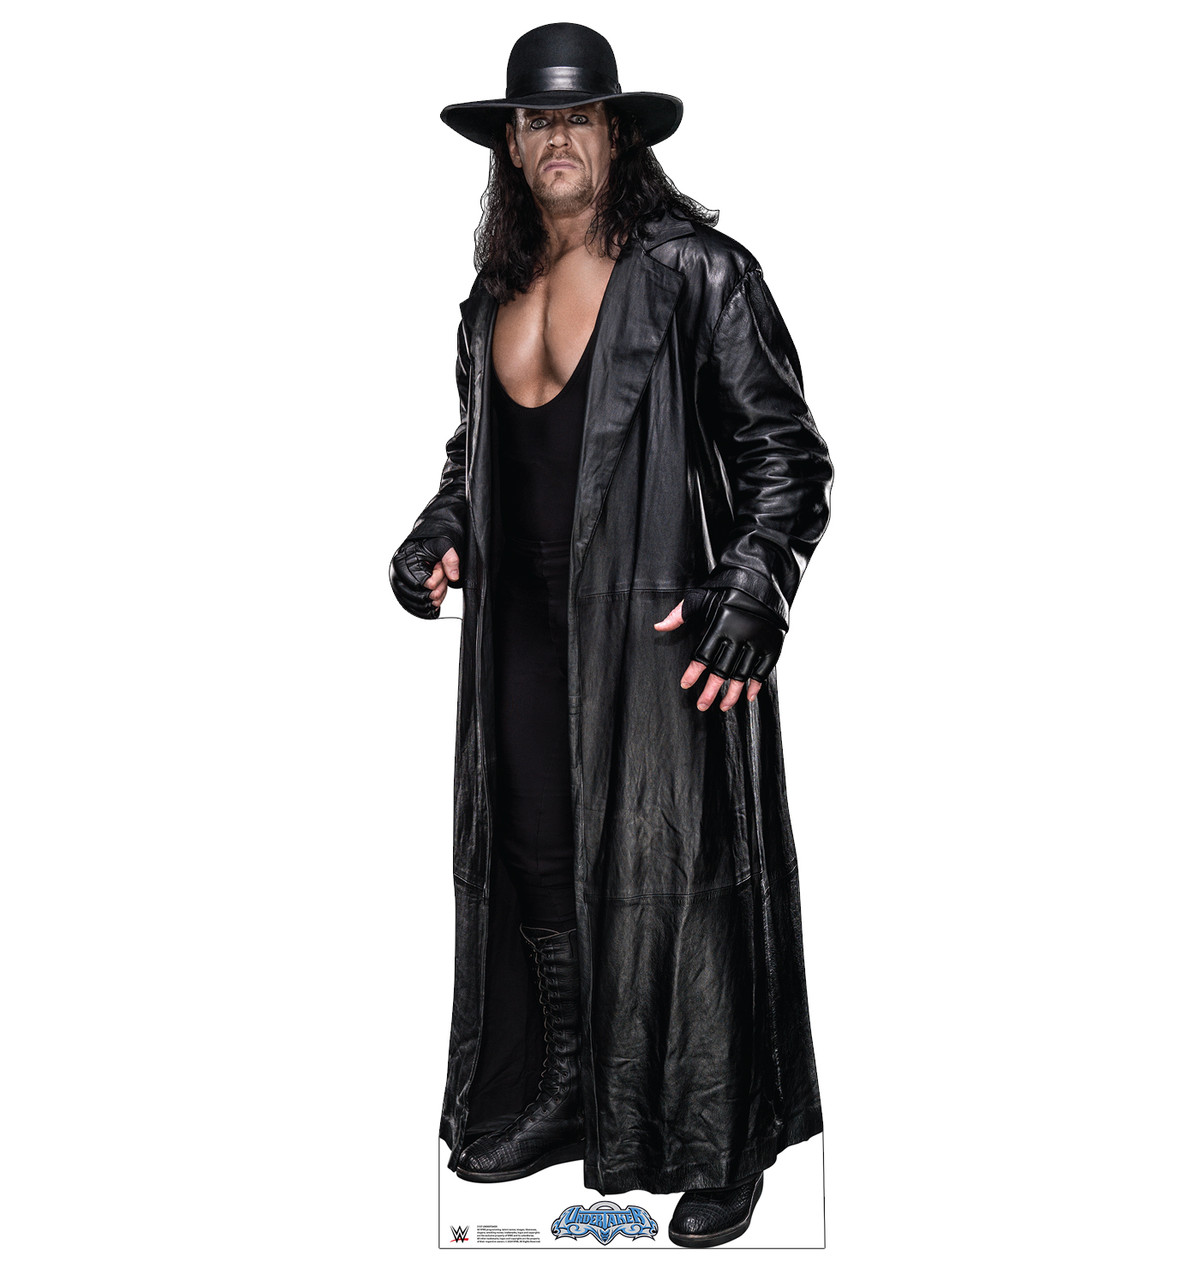 Life-size cardboard standee of the Undertaker from WWE.